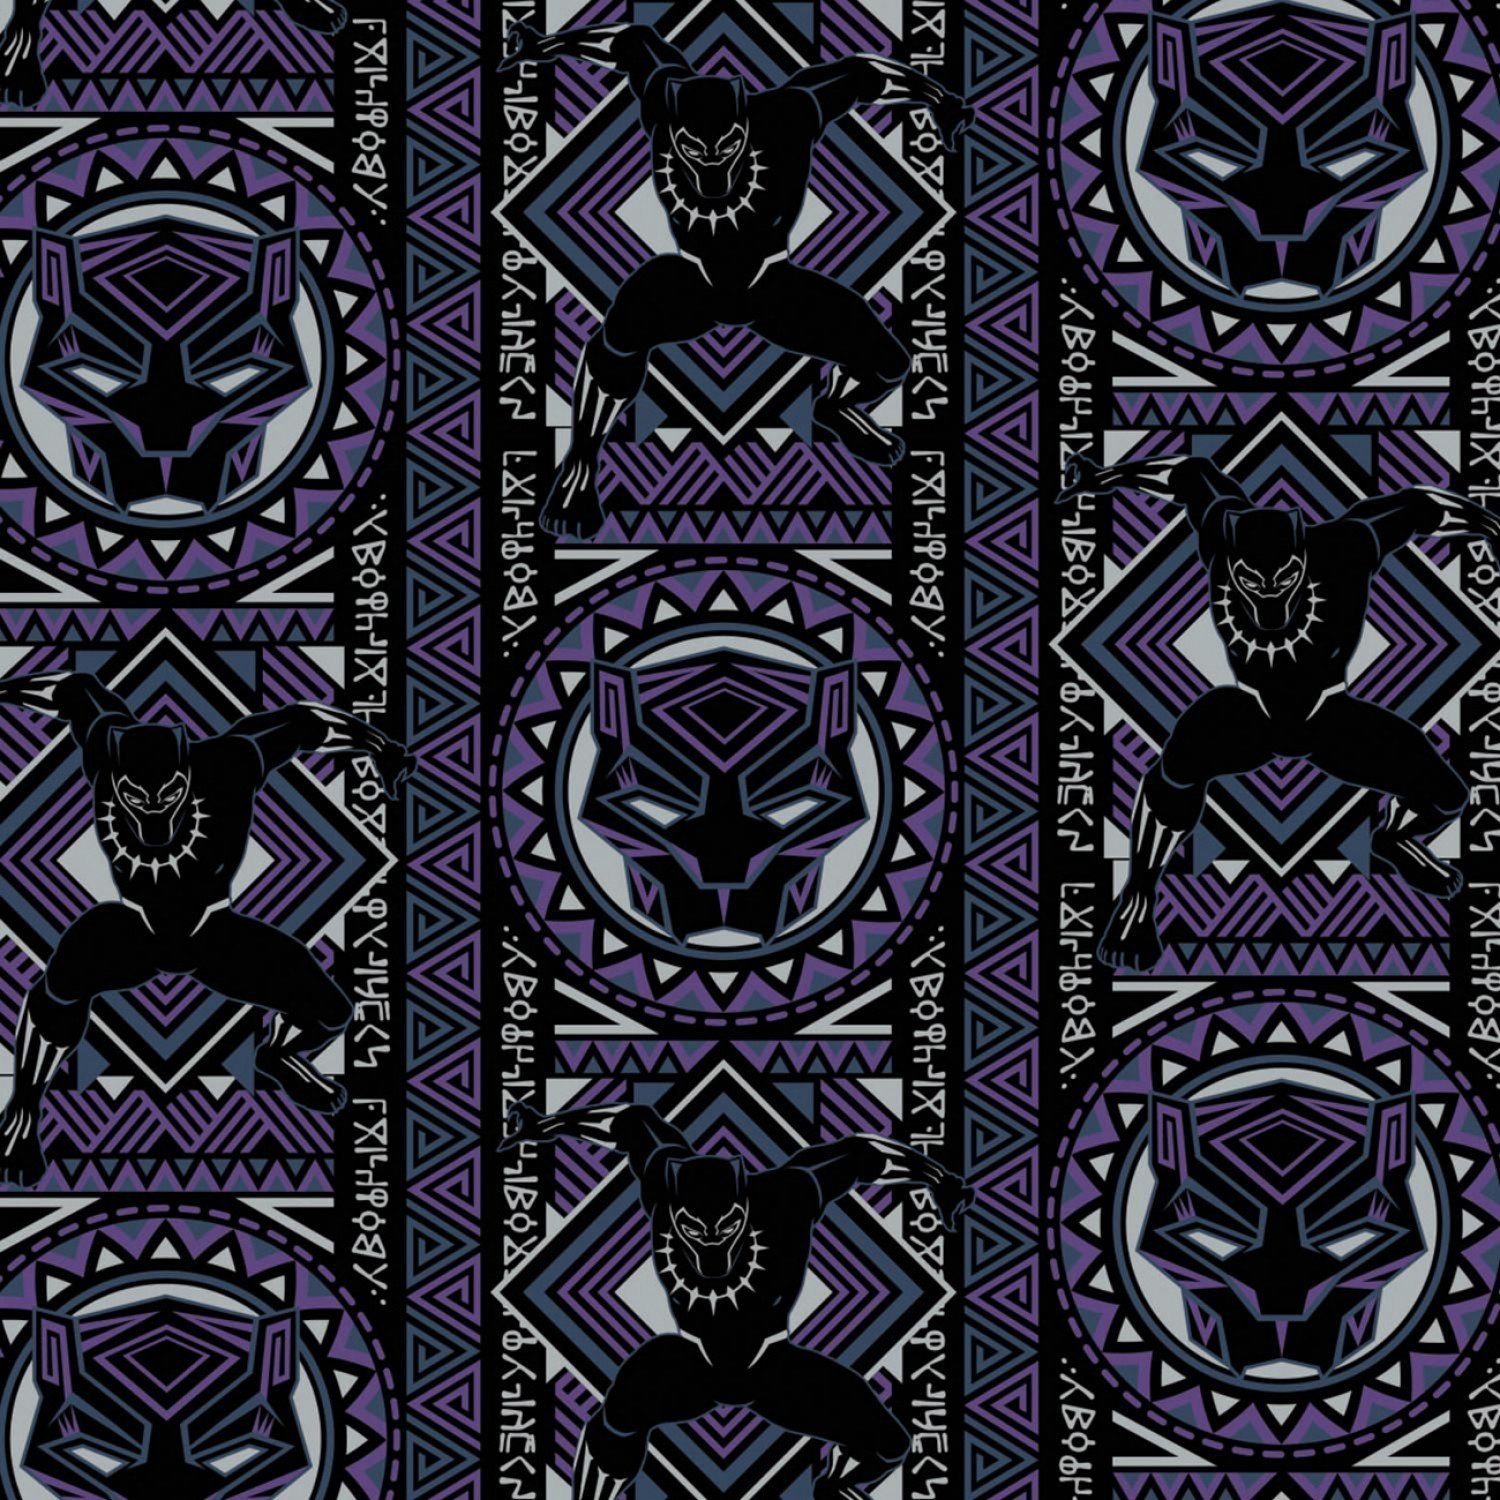 Black Panther 13020446-02 Mosaic Purple